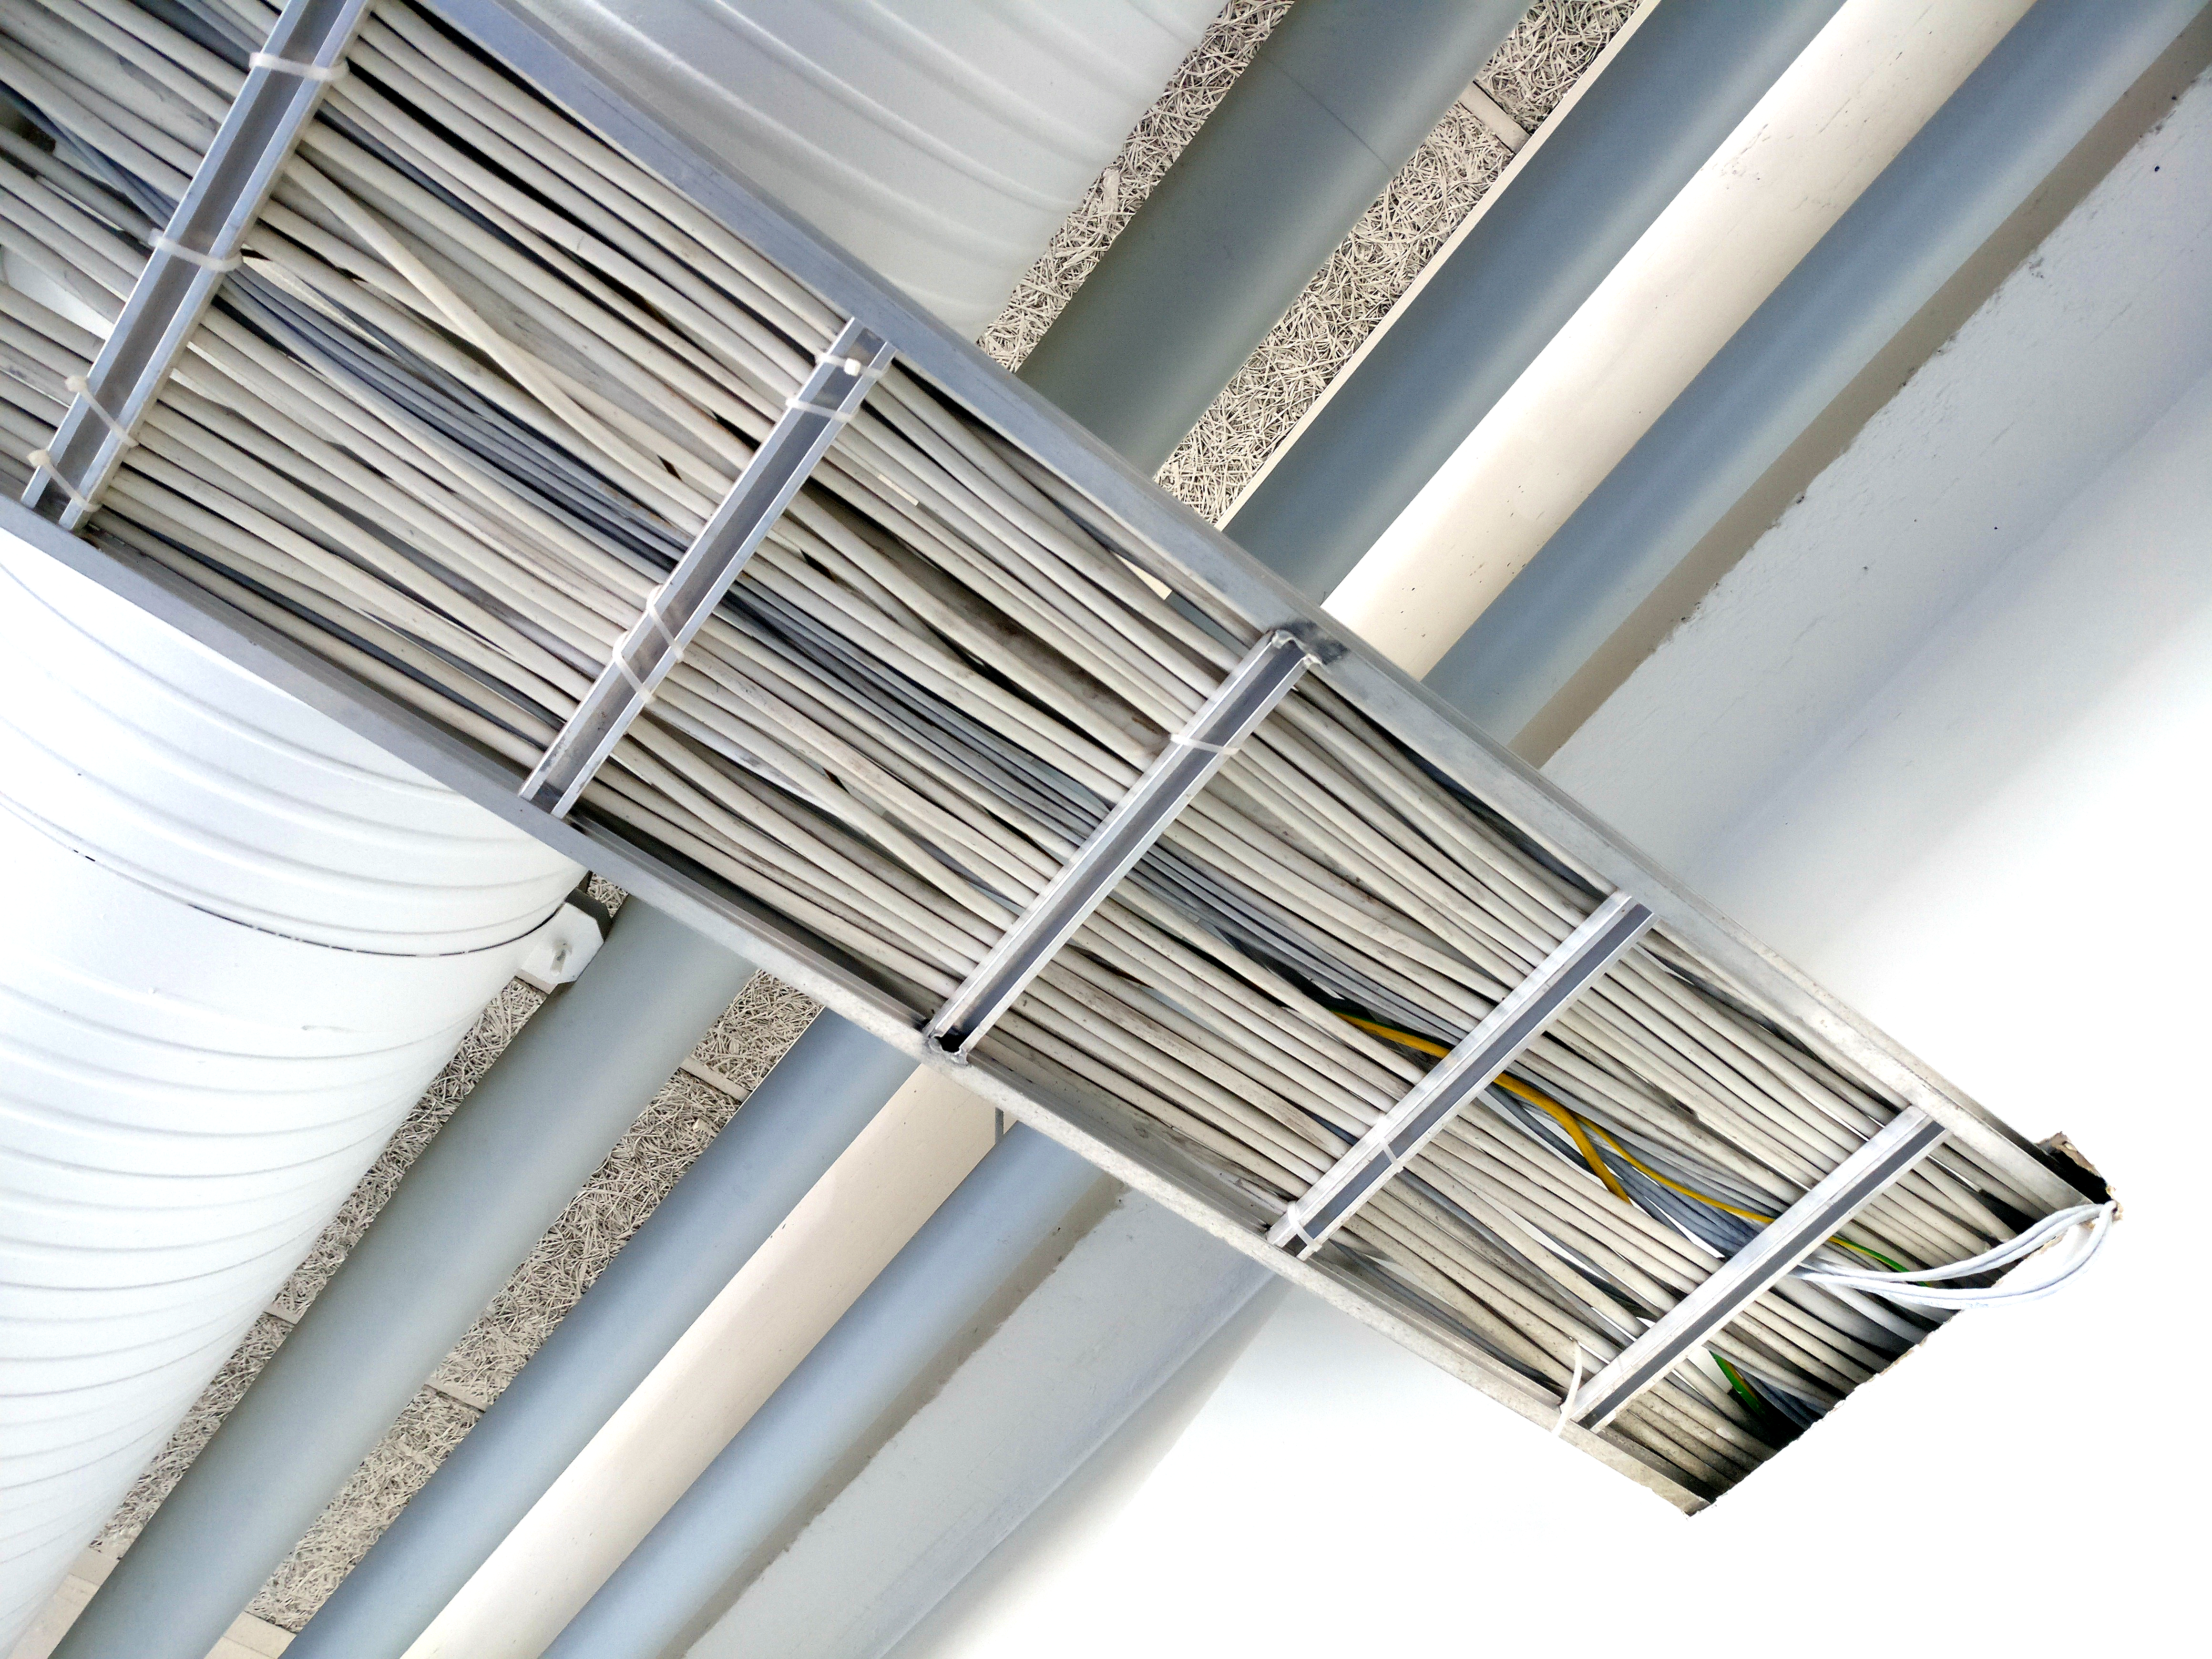 File:Cable tray with cables.jpg - Wikimedia Commons